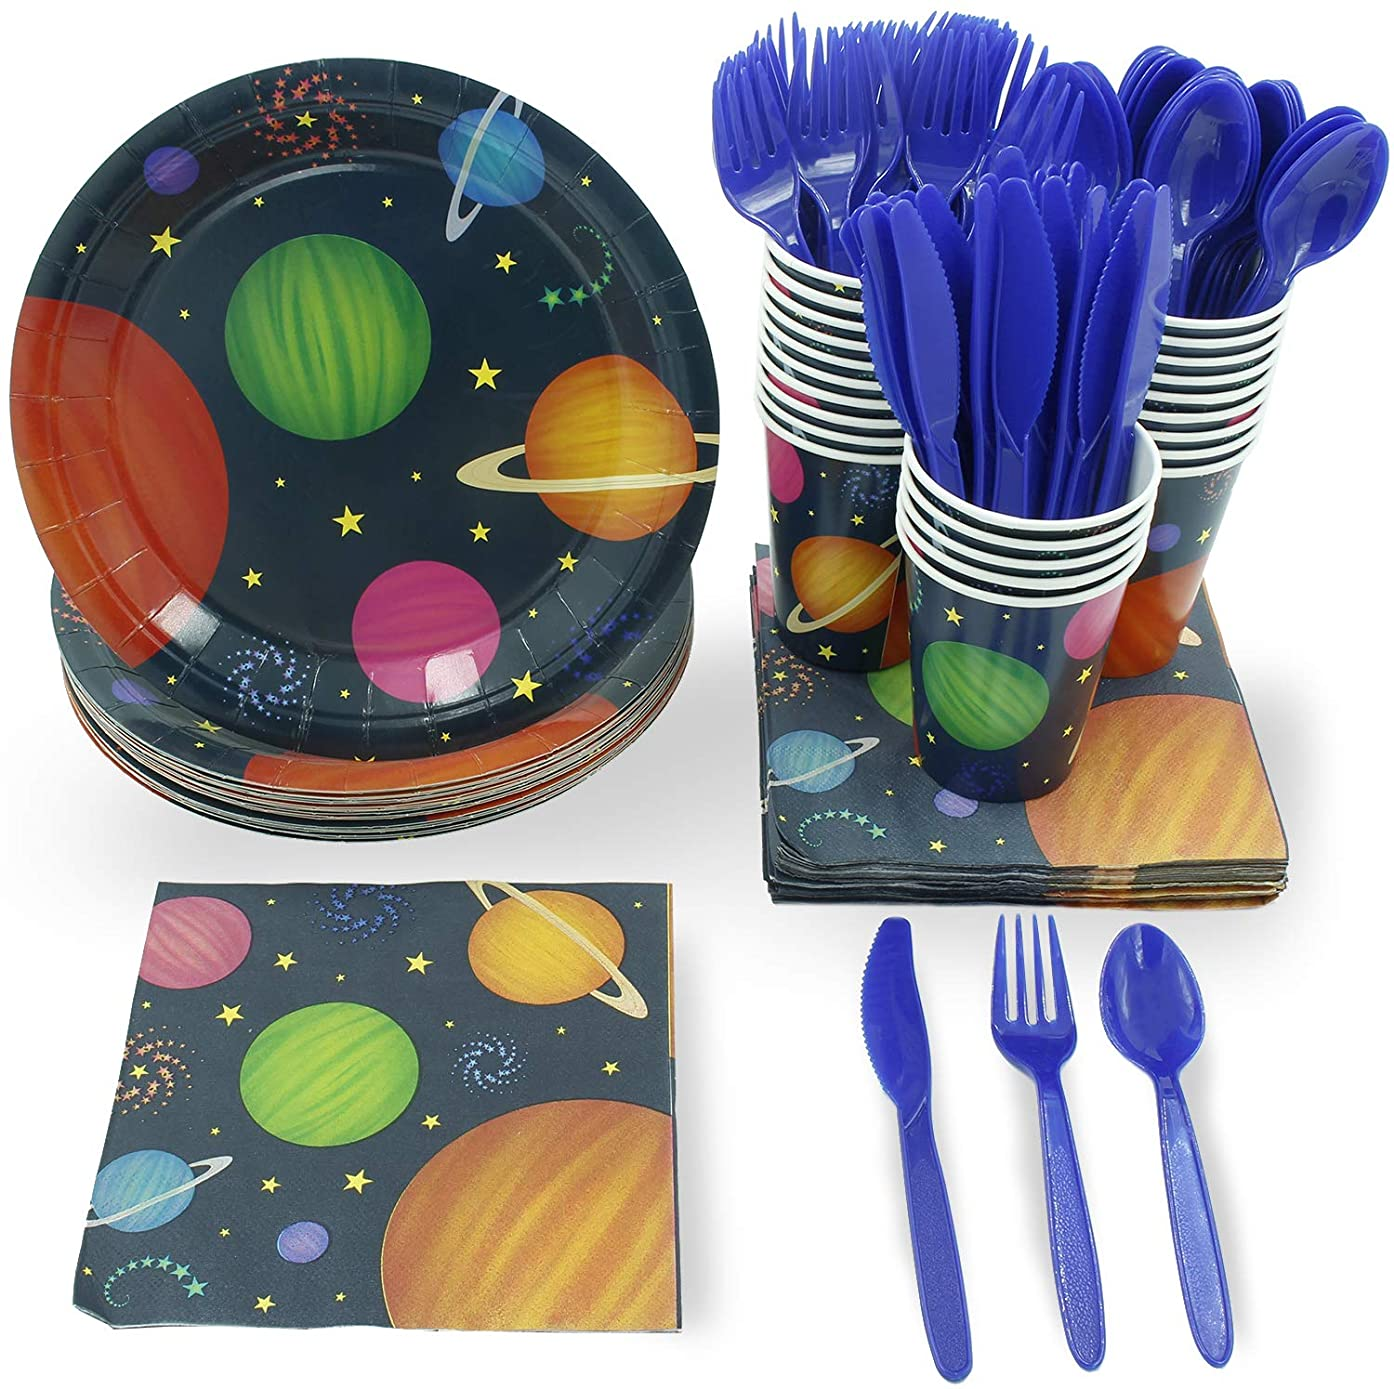 Juvale Outer Space Party Supplies – Serves 24 – Includes Plates, Knives, Spoons, Forks, Cups and Napkins. Perfect Outer Space Birthday Party Pack for Kids Planet Themed Parties.